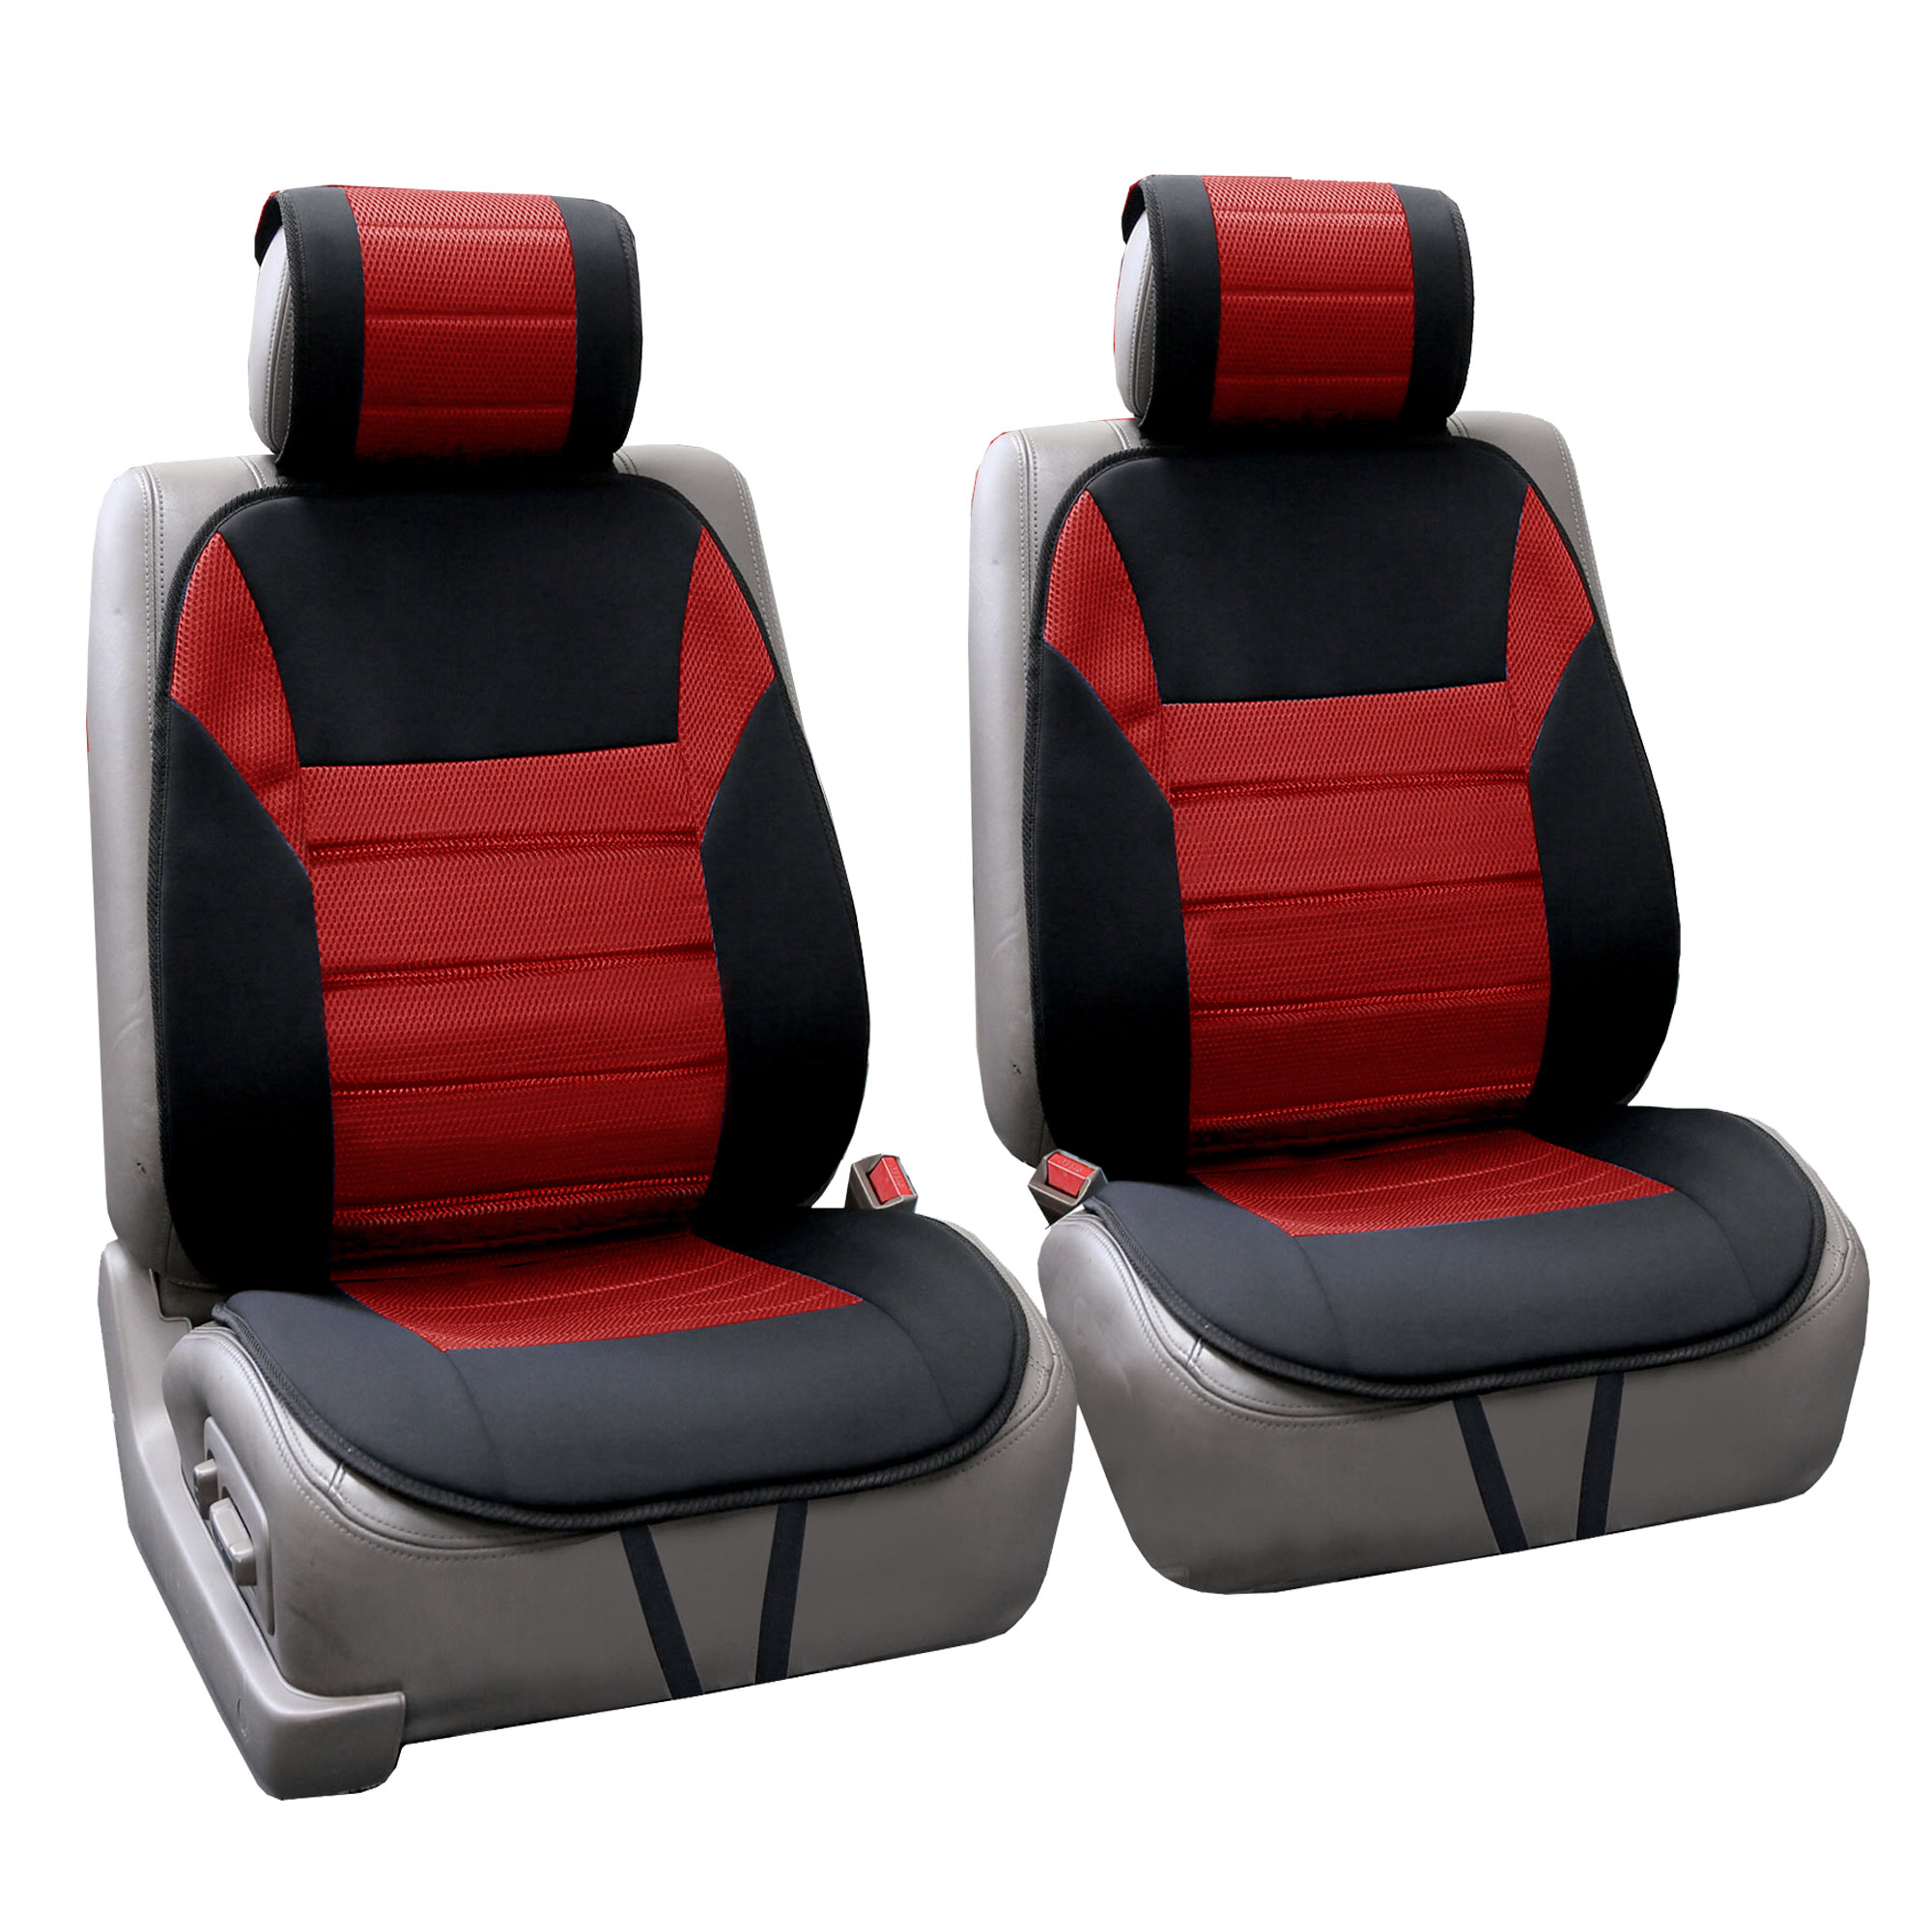 car seat covers comfy car seat cushion pads rubber floor mat set ebay. Black Bedroom Furniture Sets. Home Design Ideas